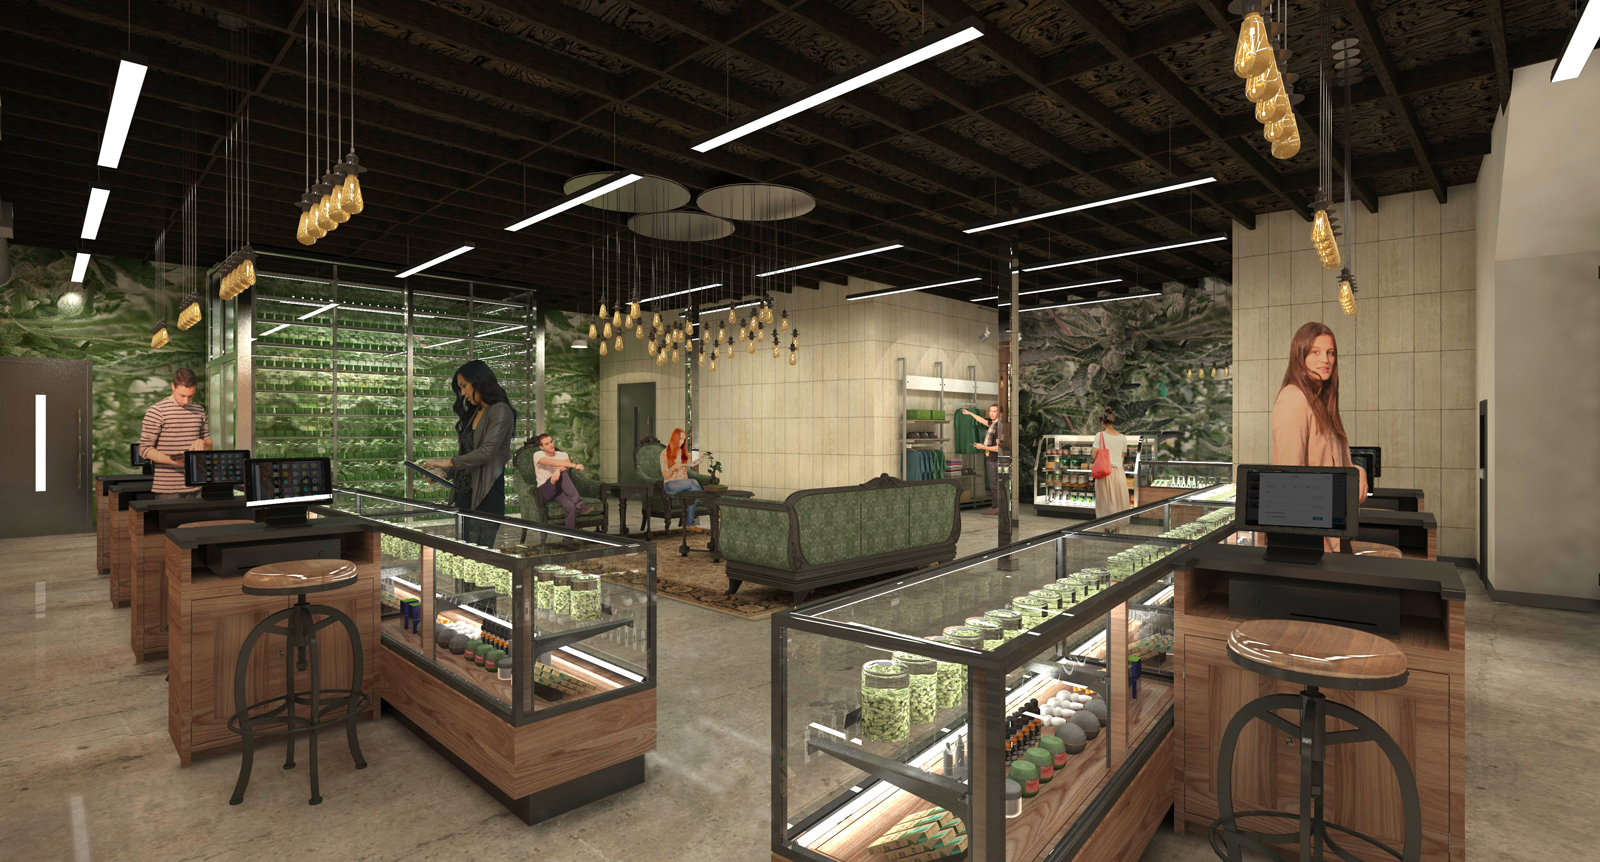 Interior of Dispensary Attribution-NoDerivs CC BY ND